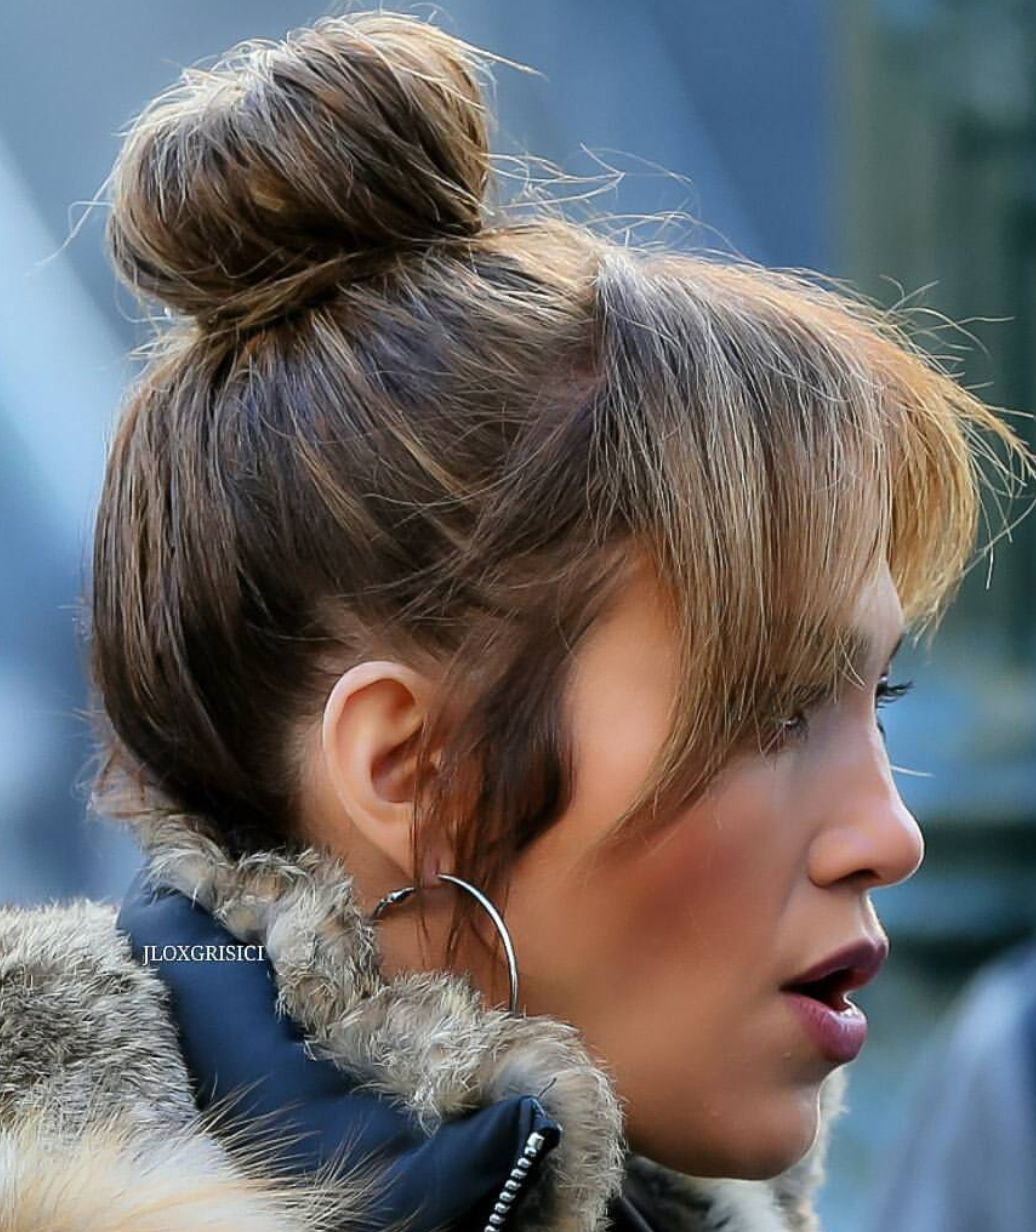 Pinterest Deborahpraha Jennifer Lopez Bangs And Bun Hair Style Jlo Jennifer Lopez Hair Jlo Hair Hair Styles